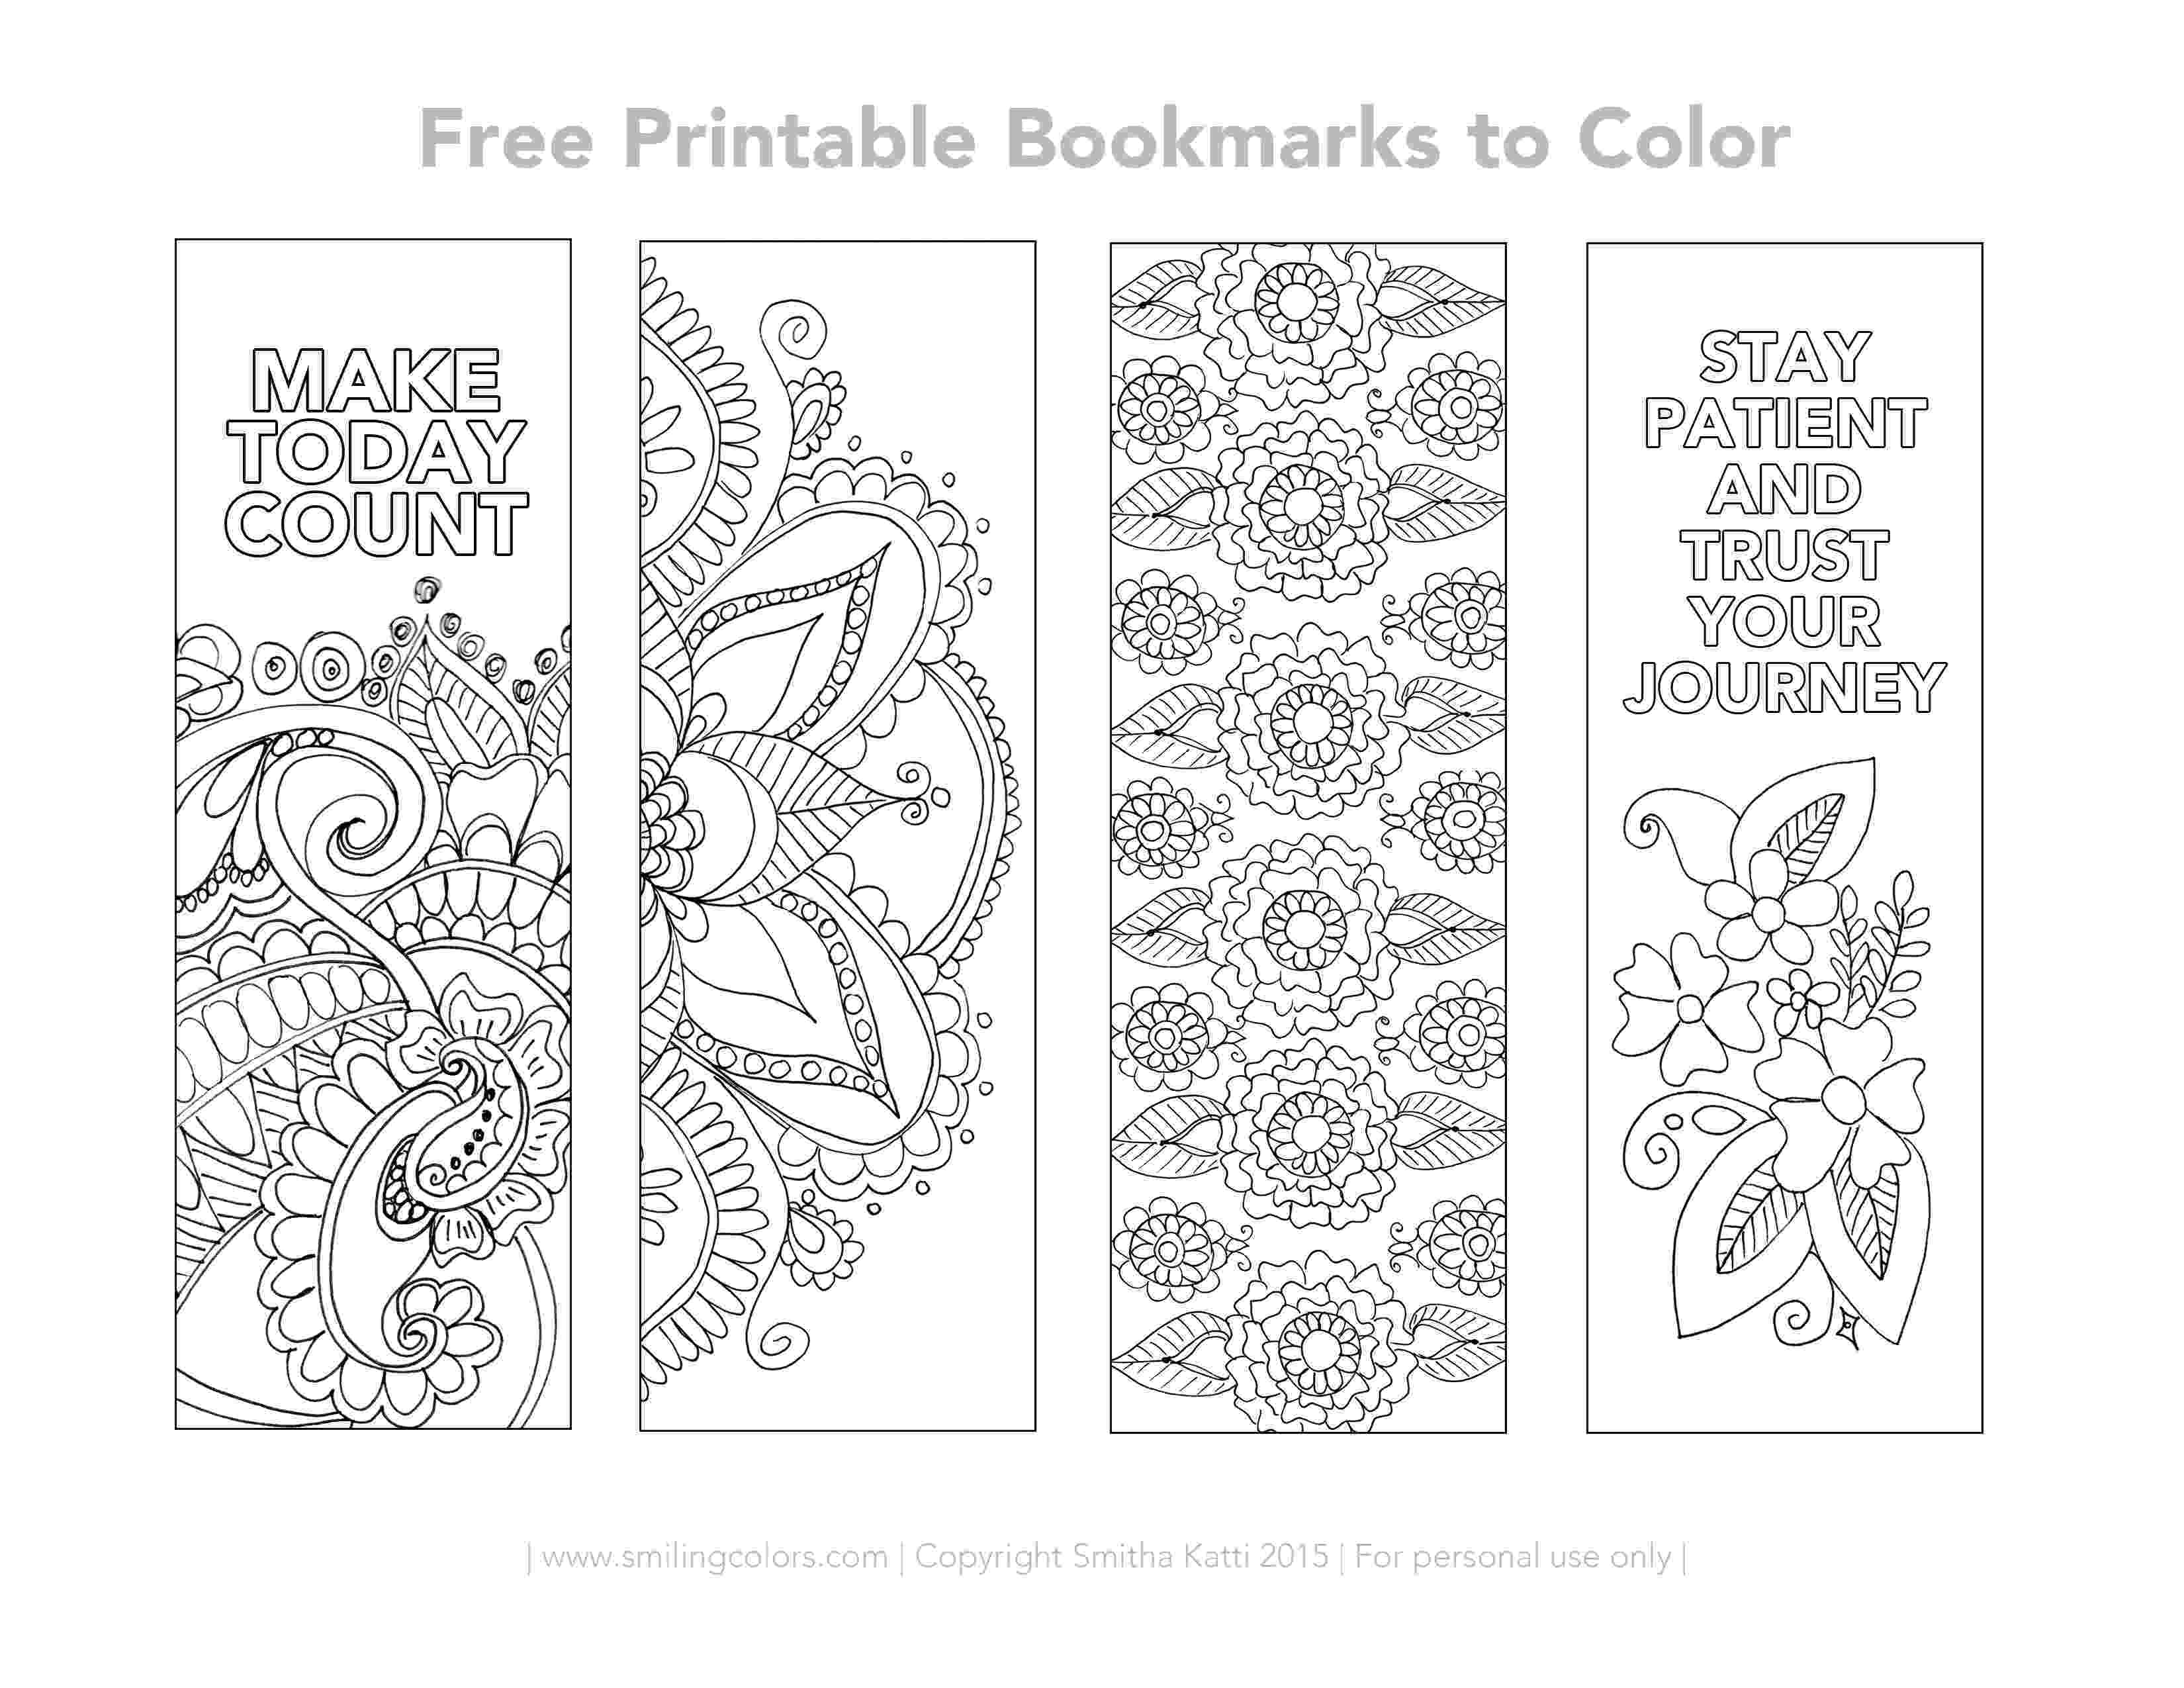 printable colouring bookmarks full of flower bookmarks coloring pages 600450 scribner colouring printable bookmarks